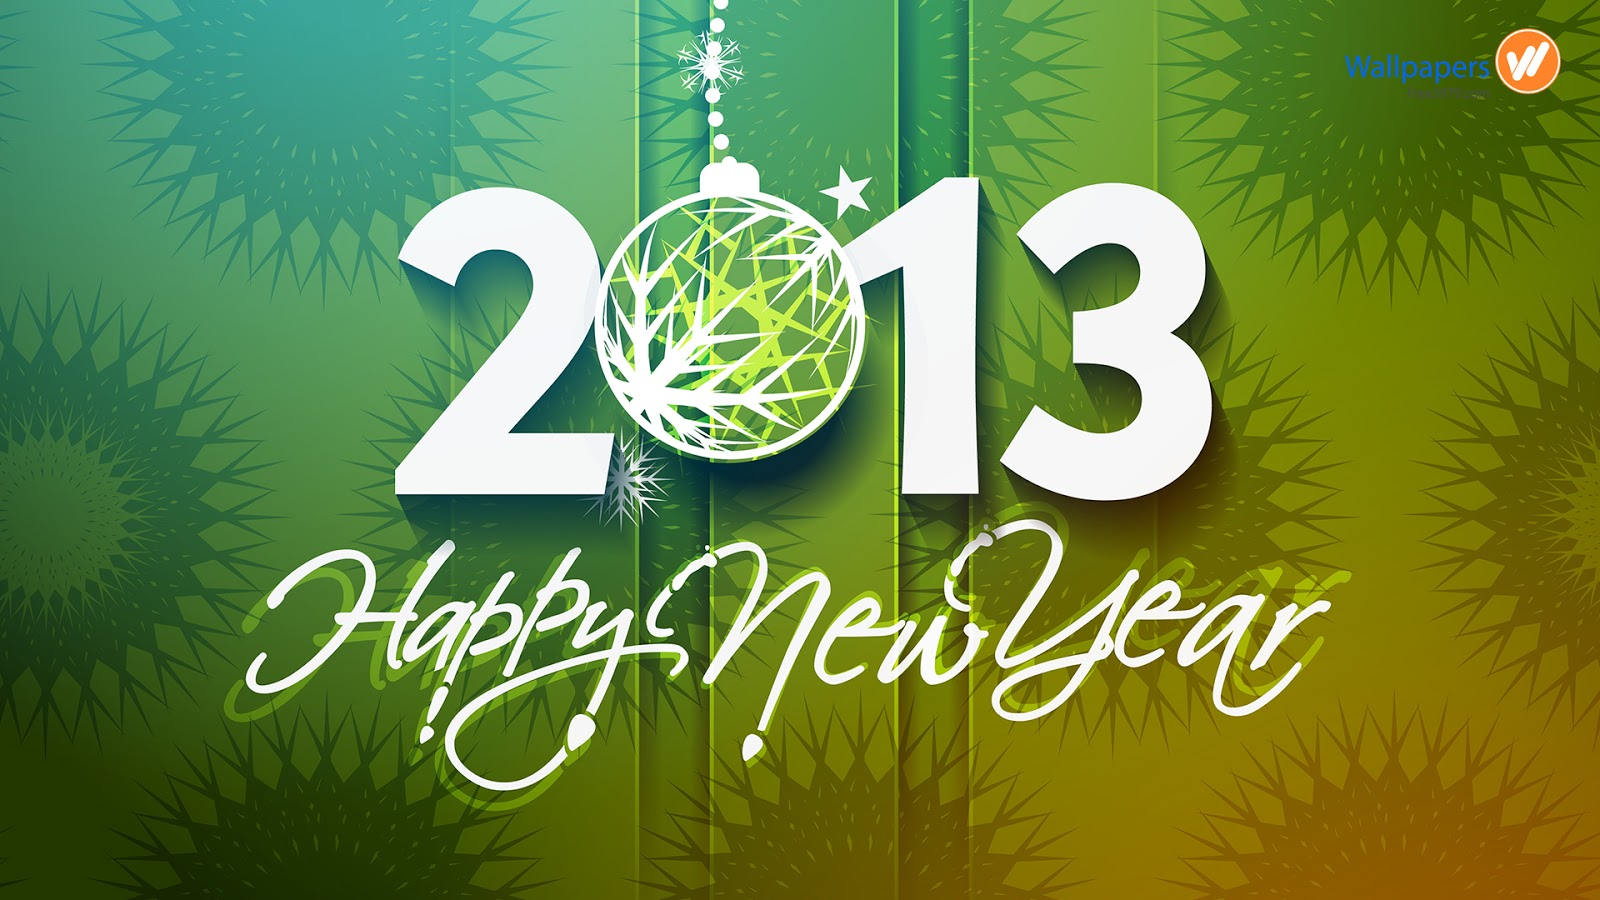 Wallpapers Wallpaper 20 Amazing Happy New Year 2013 Wallpapers